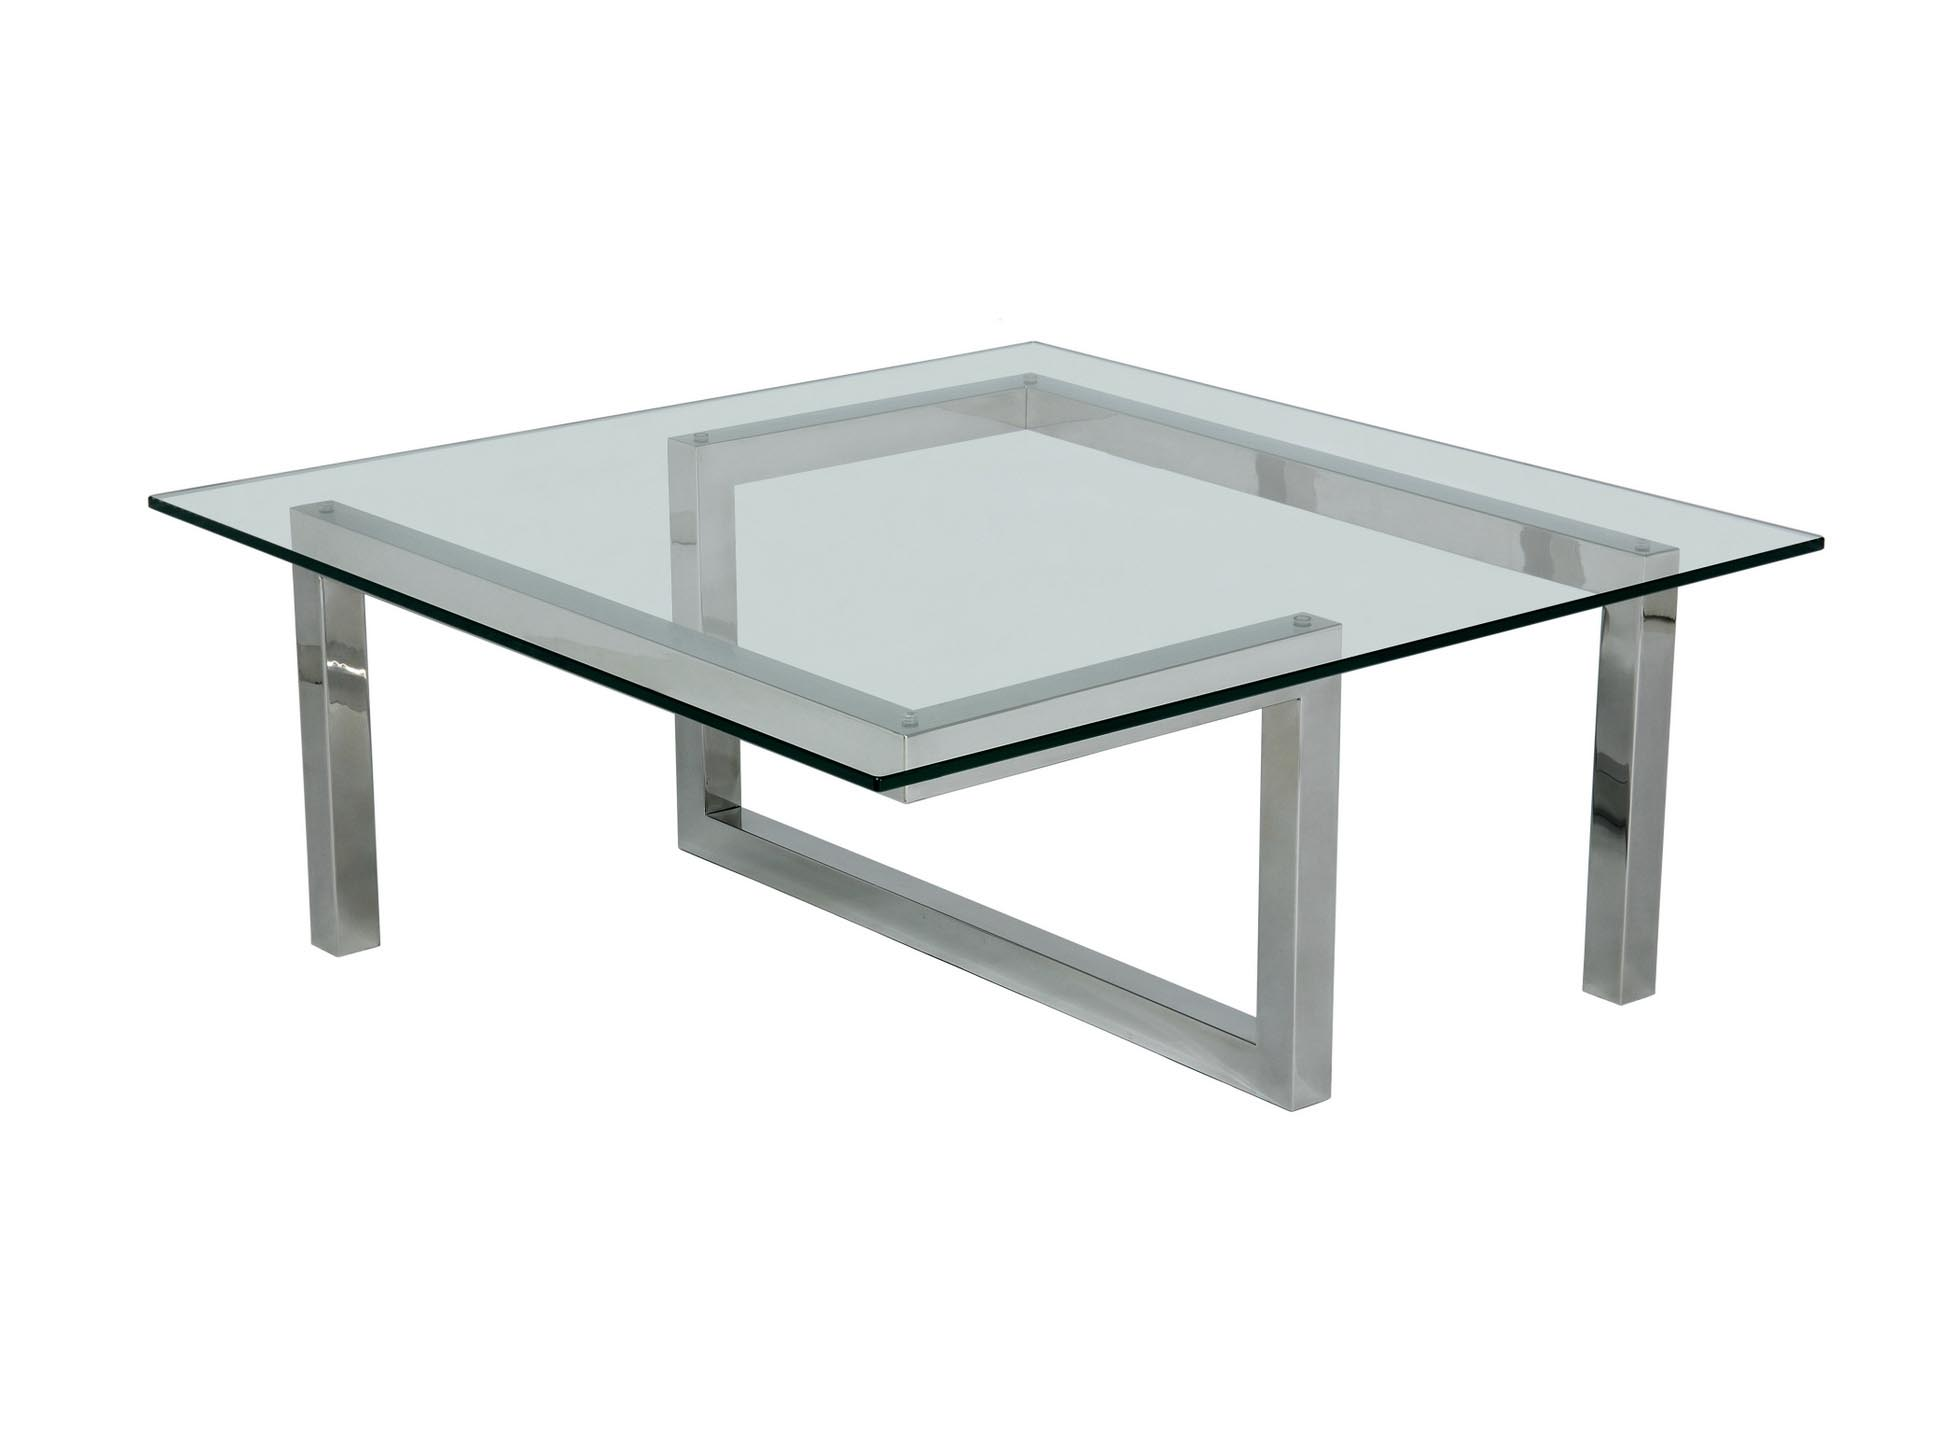 Stainless Steel And Glass Coffee Tables Coffee Table Design Ideas: metal glass top coffee table